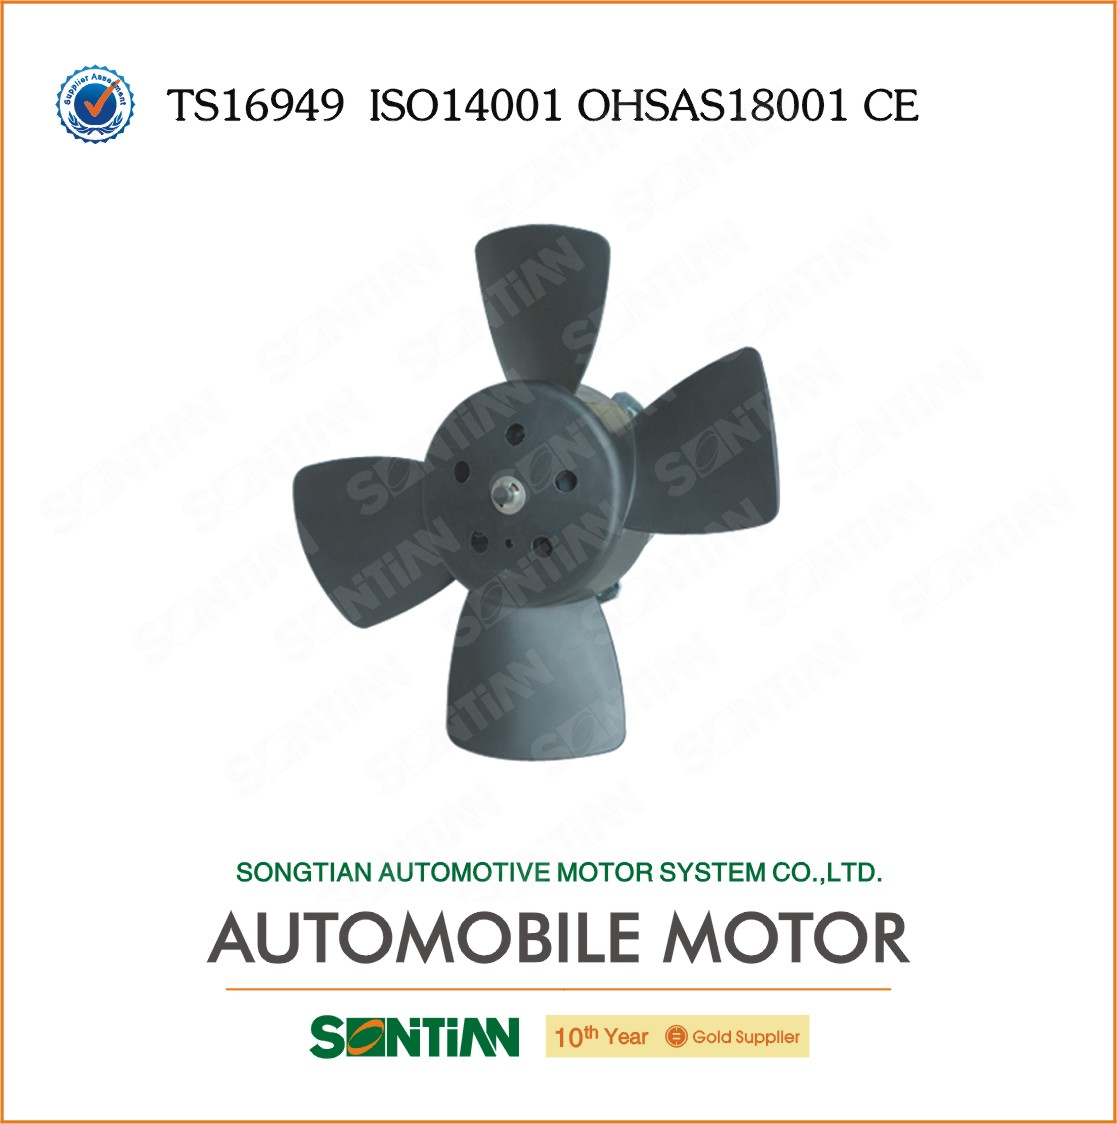 CHINA HIGH PERFORMANCE SPARE PARTS 325 959 455.3 12V DC MOTOTR RADIATOR COOLING FAN SPECIFICATION FOR VW WENZHOU